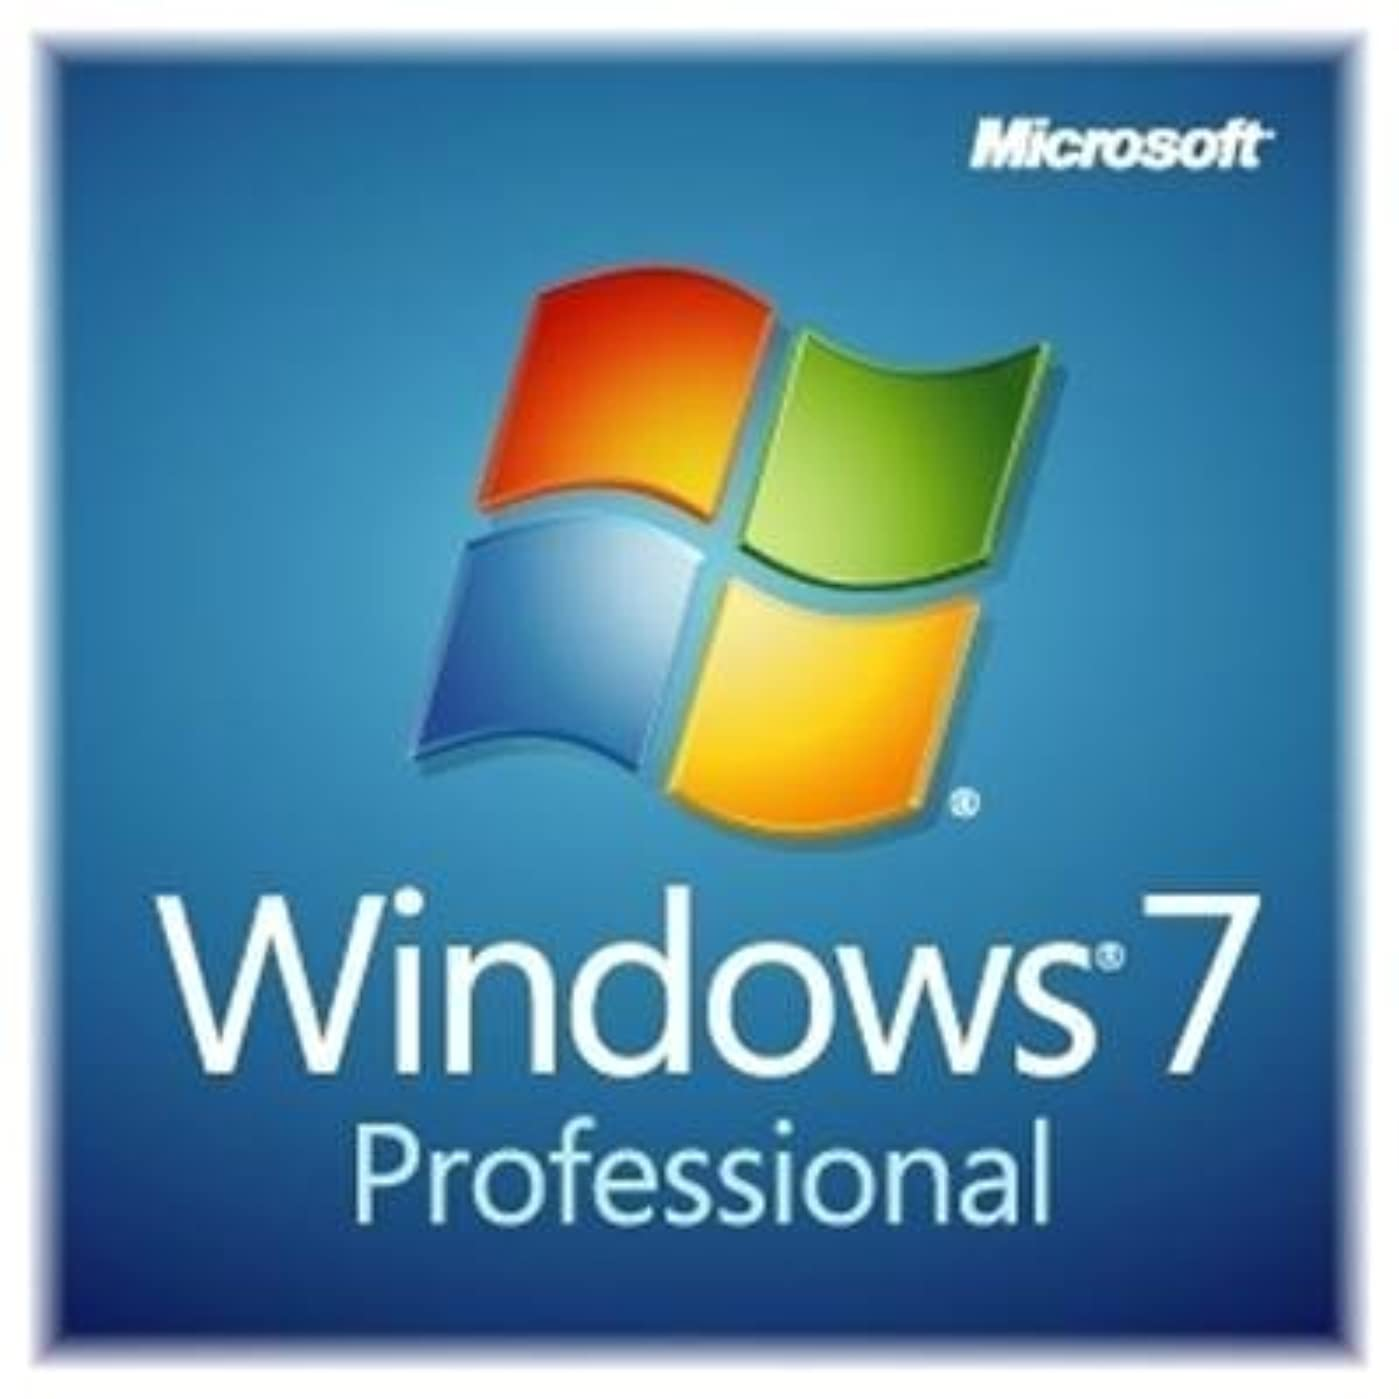 パール強化呼ぶWindows 7 Professional 32bit SP1 日本語 DSP版 DVD LCP 【紙パッケージ版】